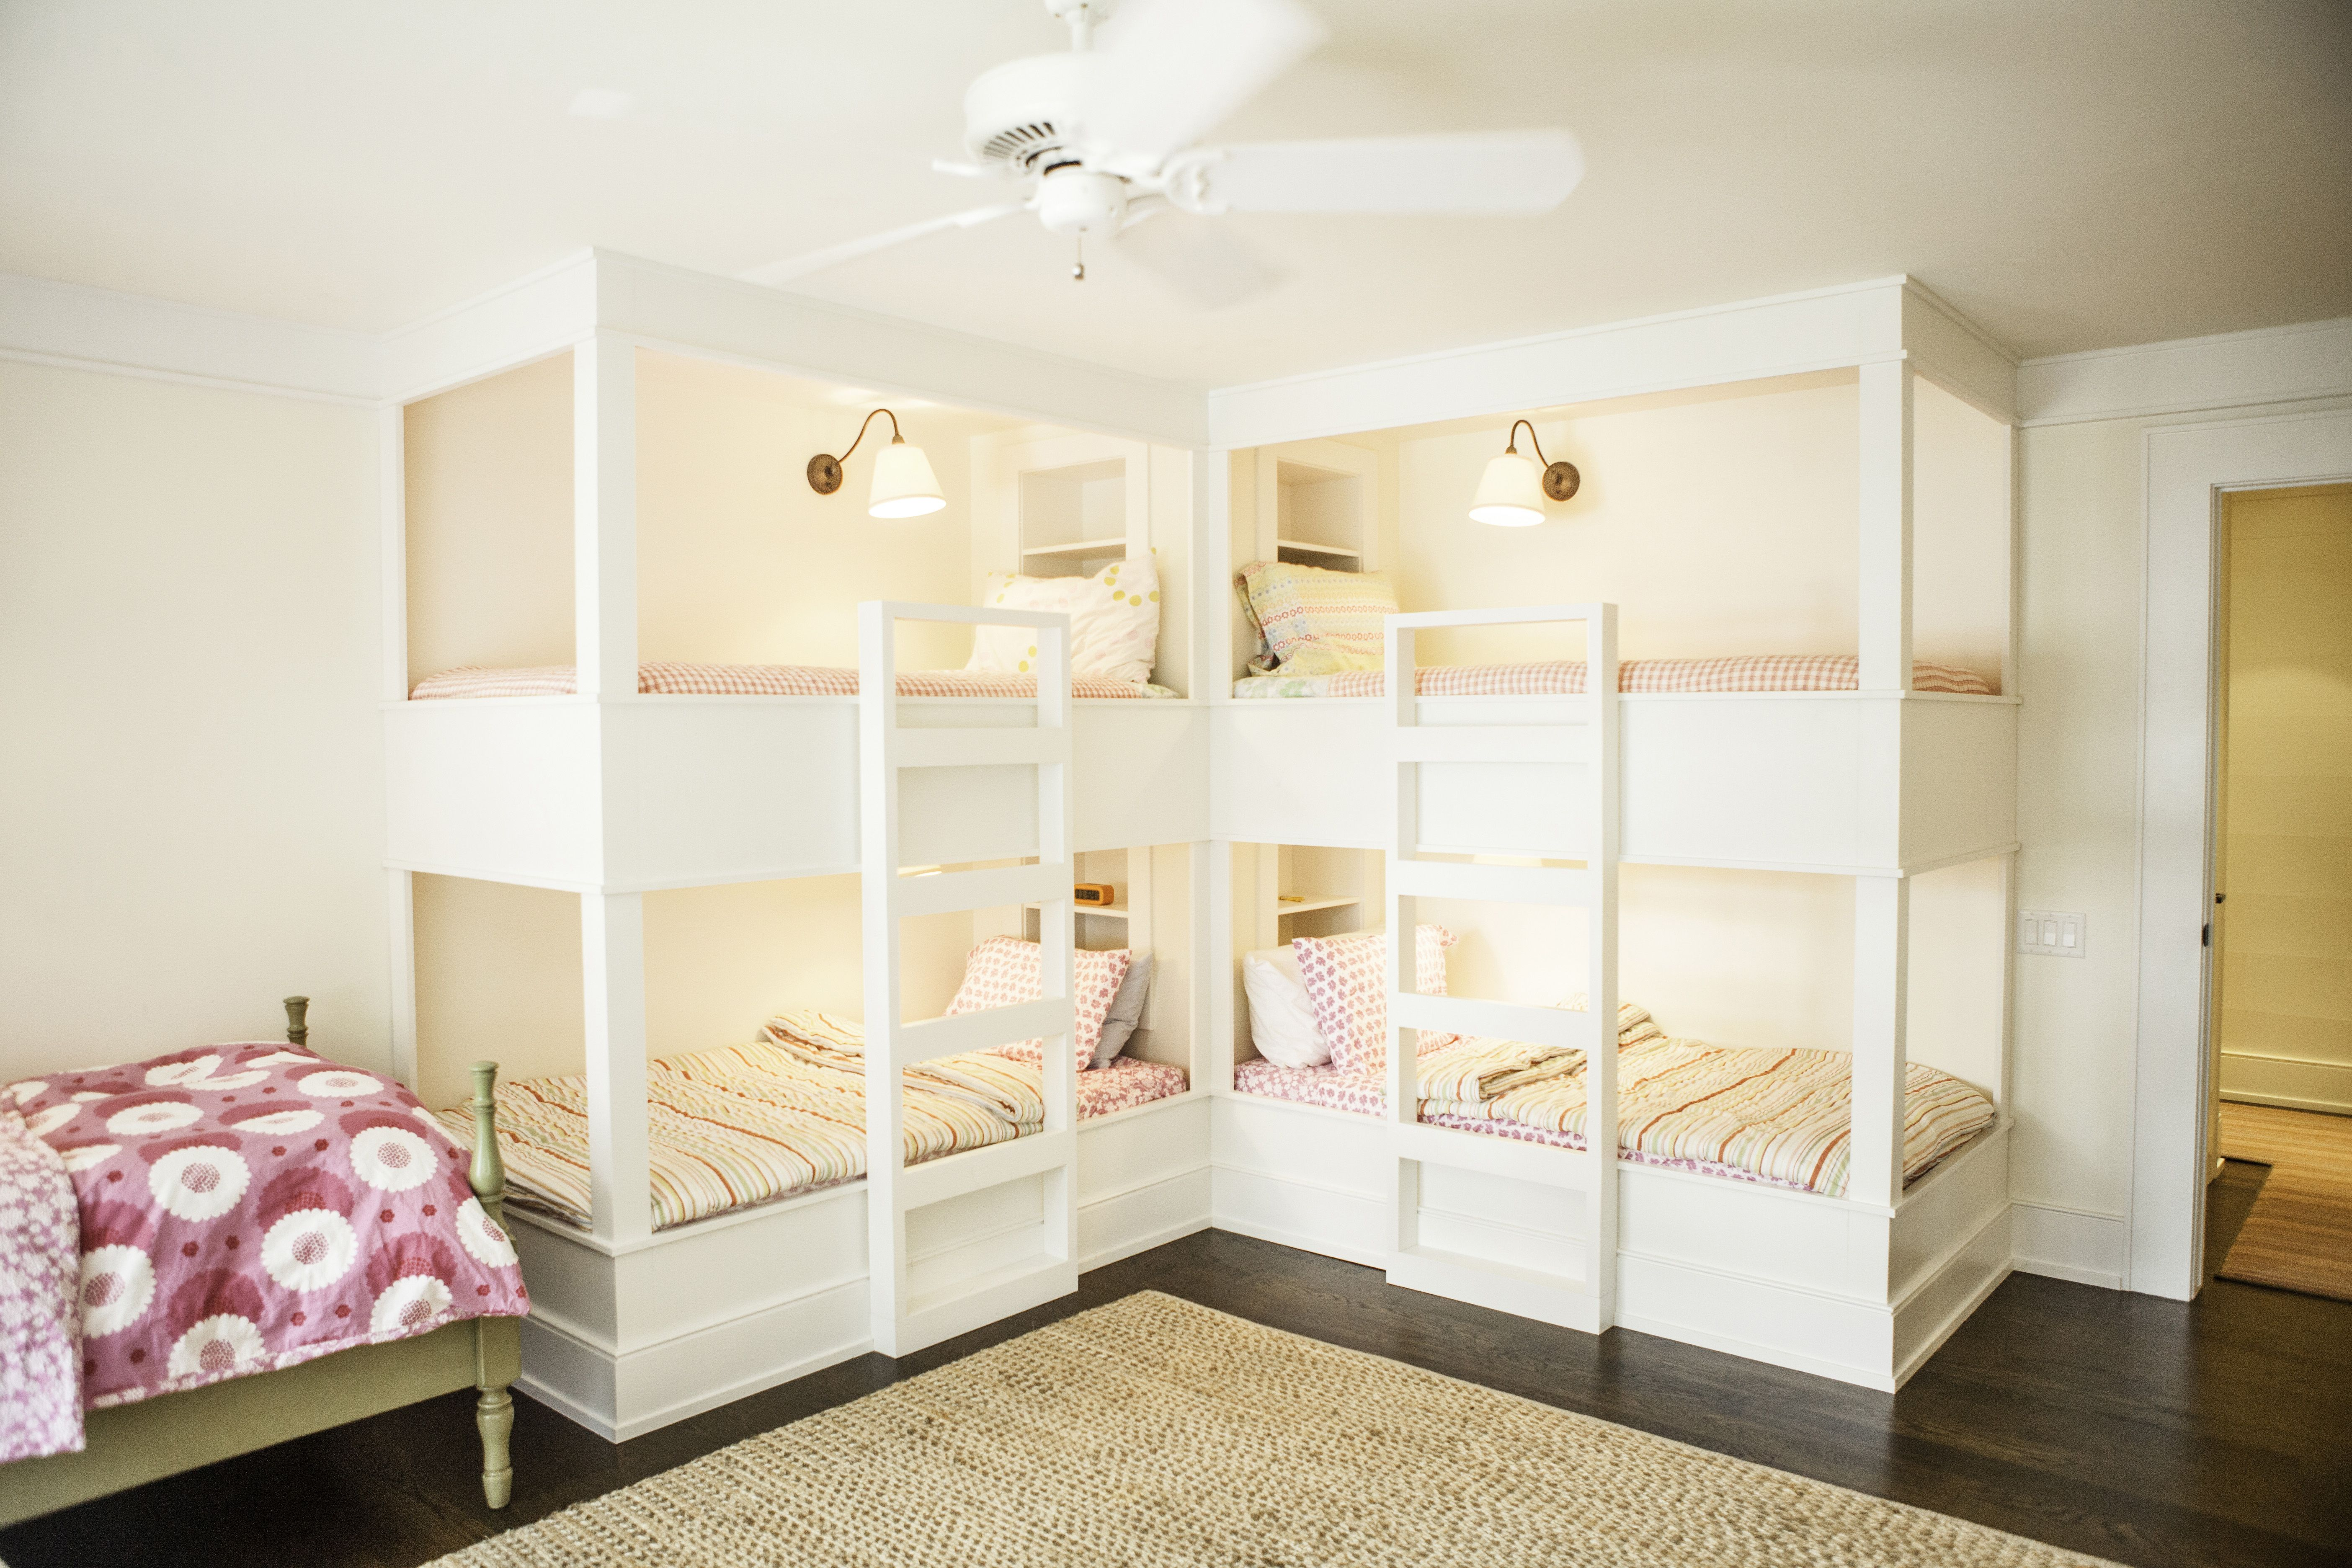 Girl S Room Built In Bunk Beds Karen Kempf Interiors Copyright